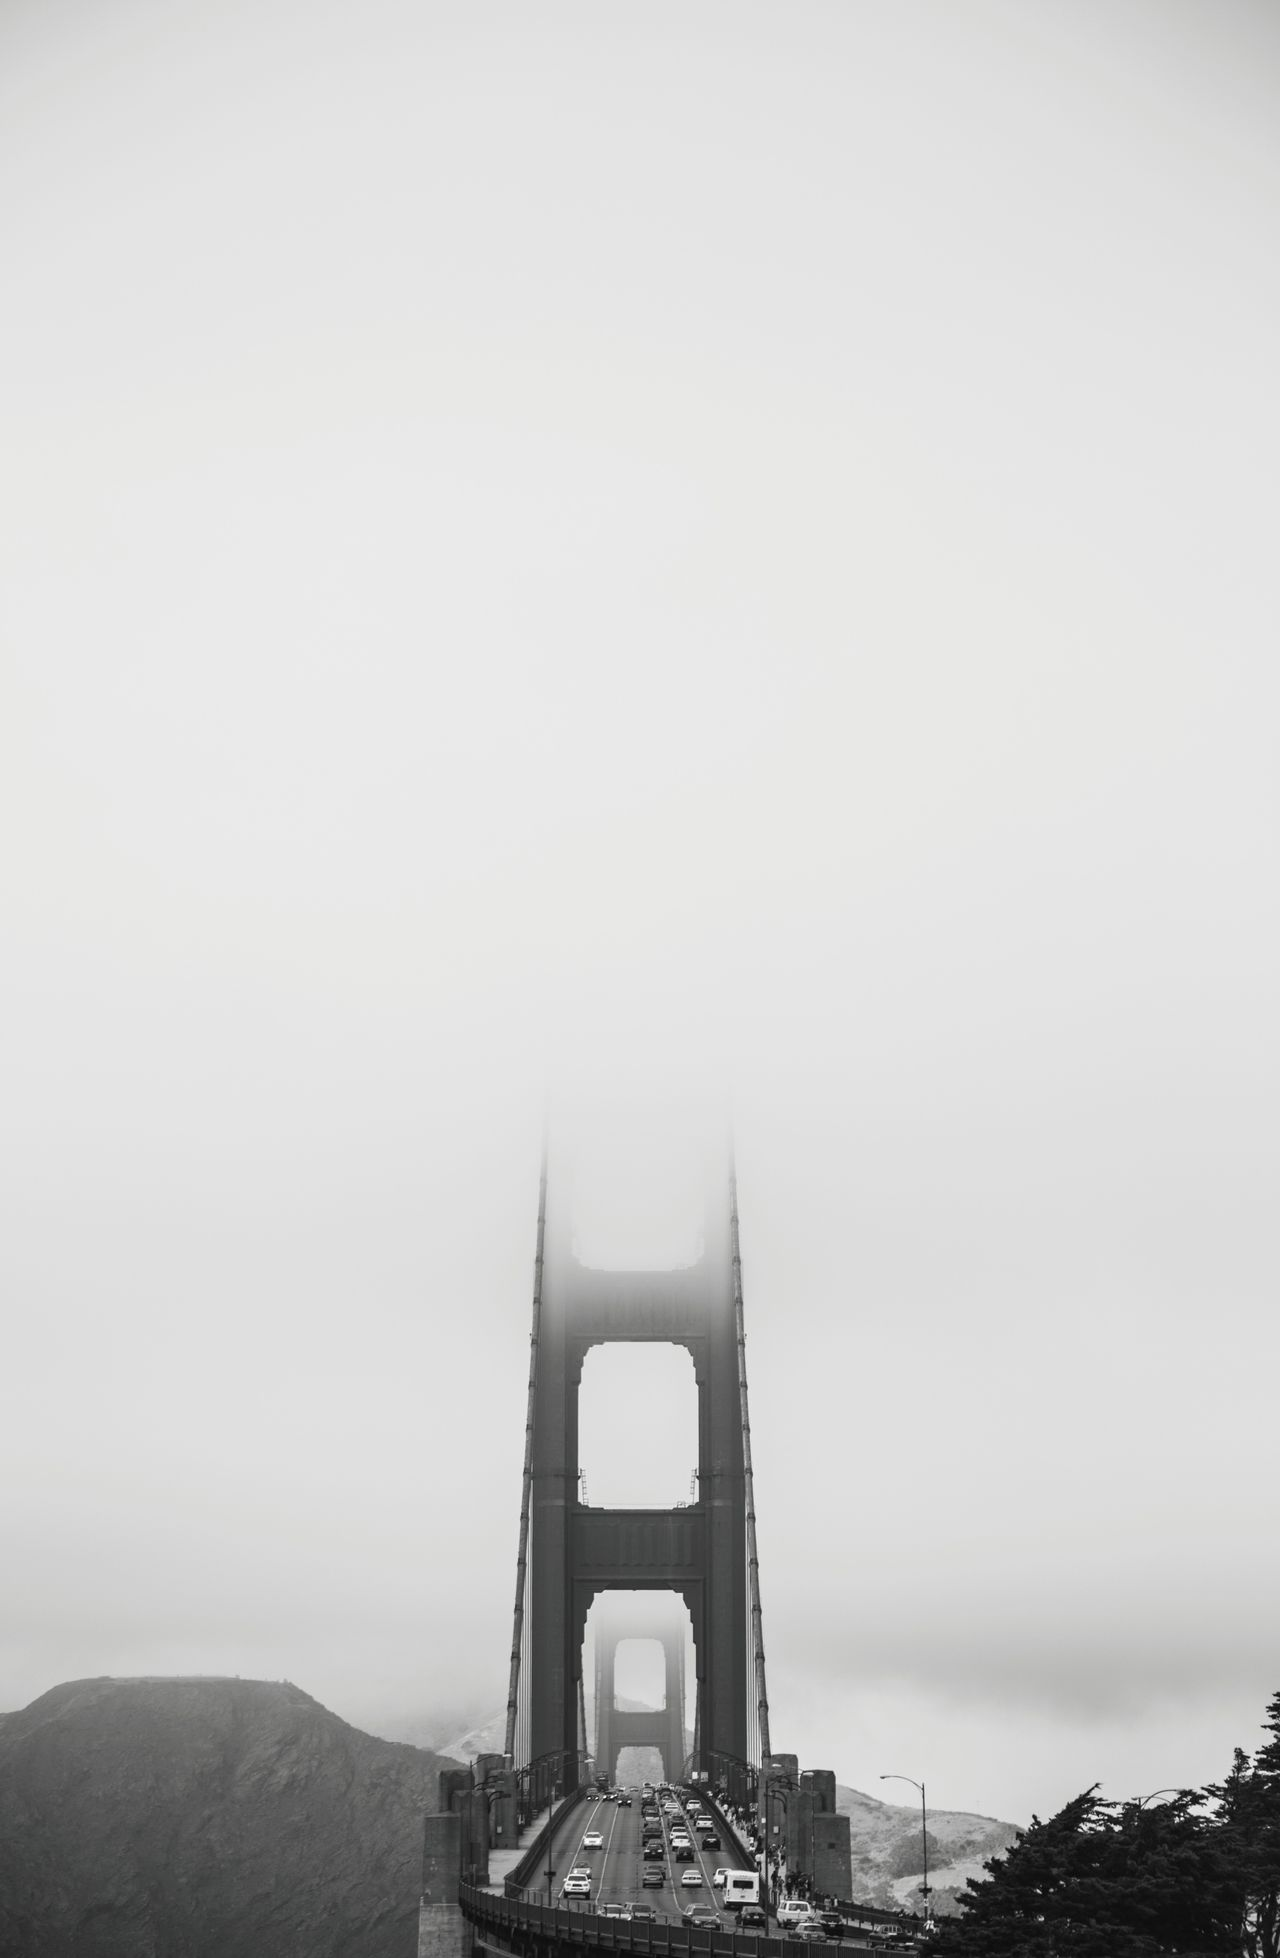 The people go to their respective places. Fog Sky Travel Destinations Architecture Outdoors Day Traveling Home For The Holidays Showcase: December Traveling Highway Road City Traffic Suspension Bridge California San Francisco Betterlandscapes